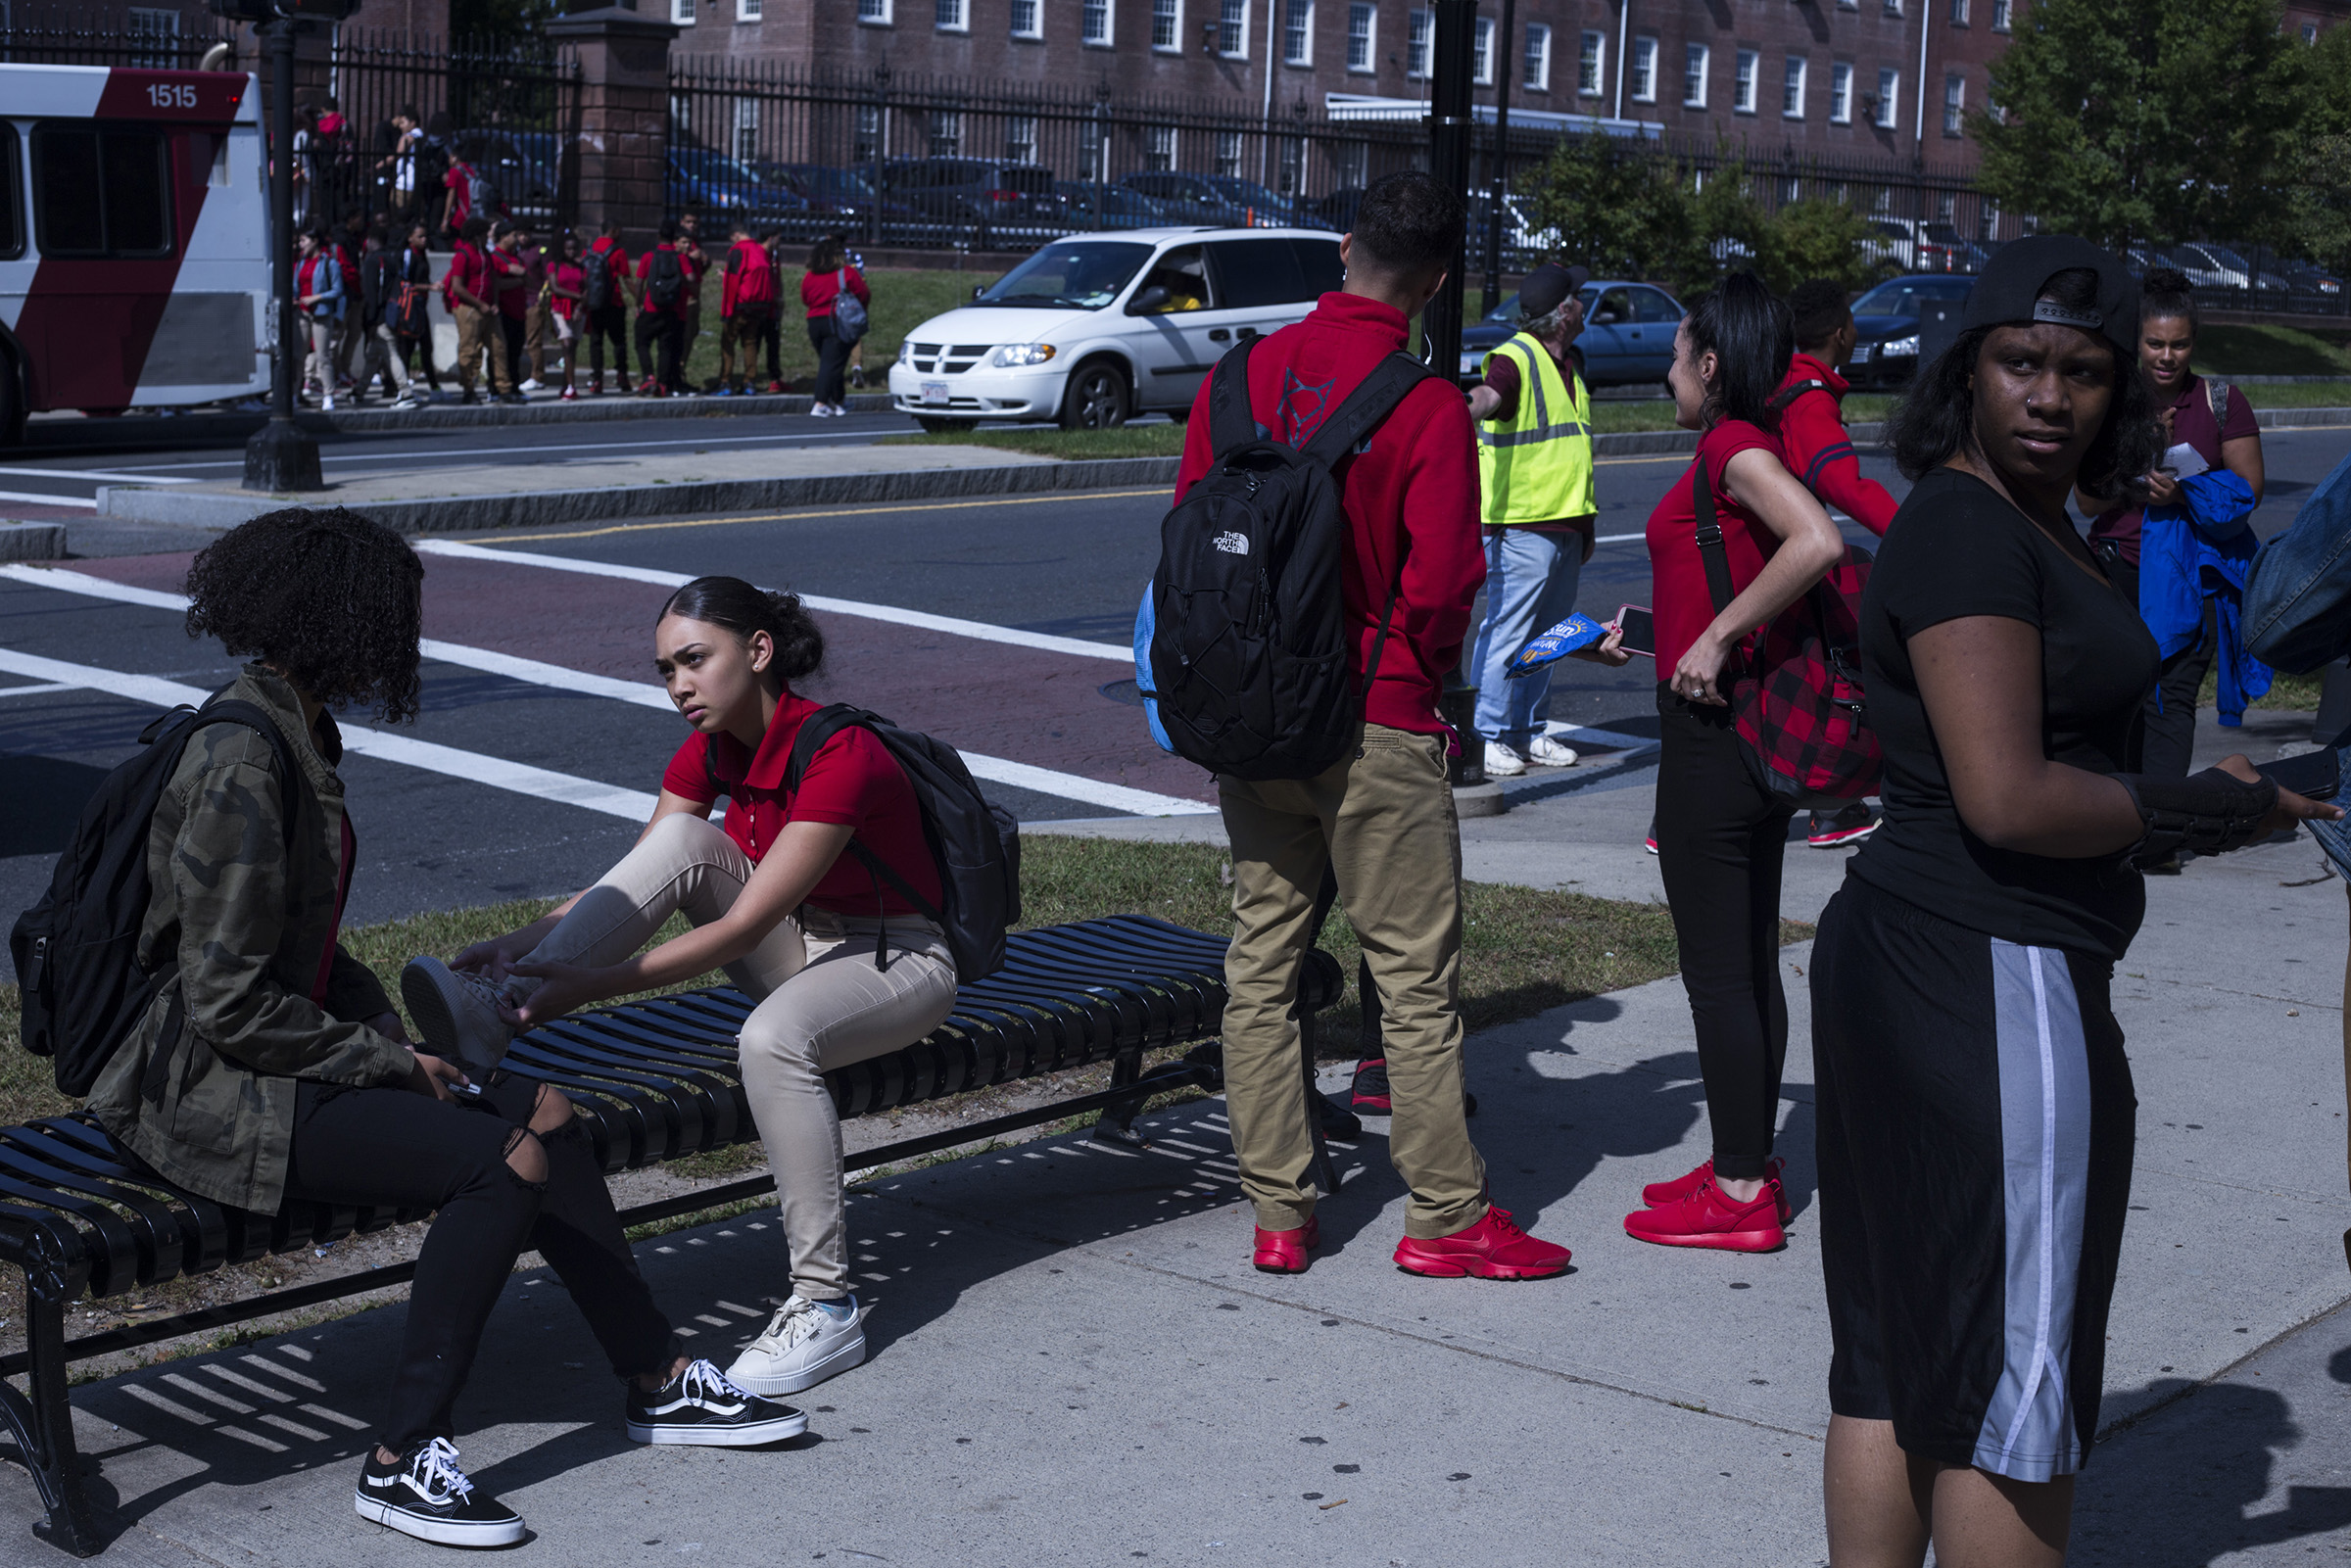 Students wait for transportation in front of the High School of Commerce following their school day in Springfield, Mass., on Monday, September, 11, 2017. (Photo by Brittany Greeson)